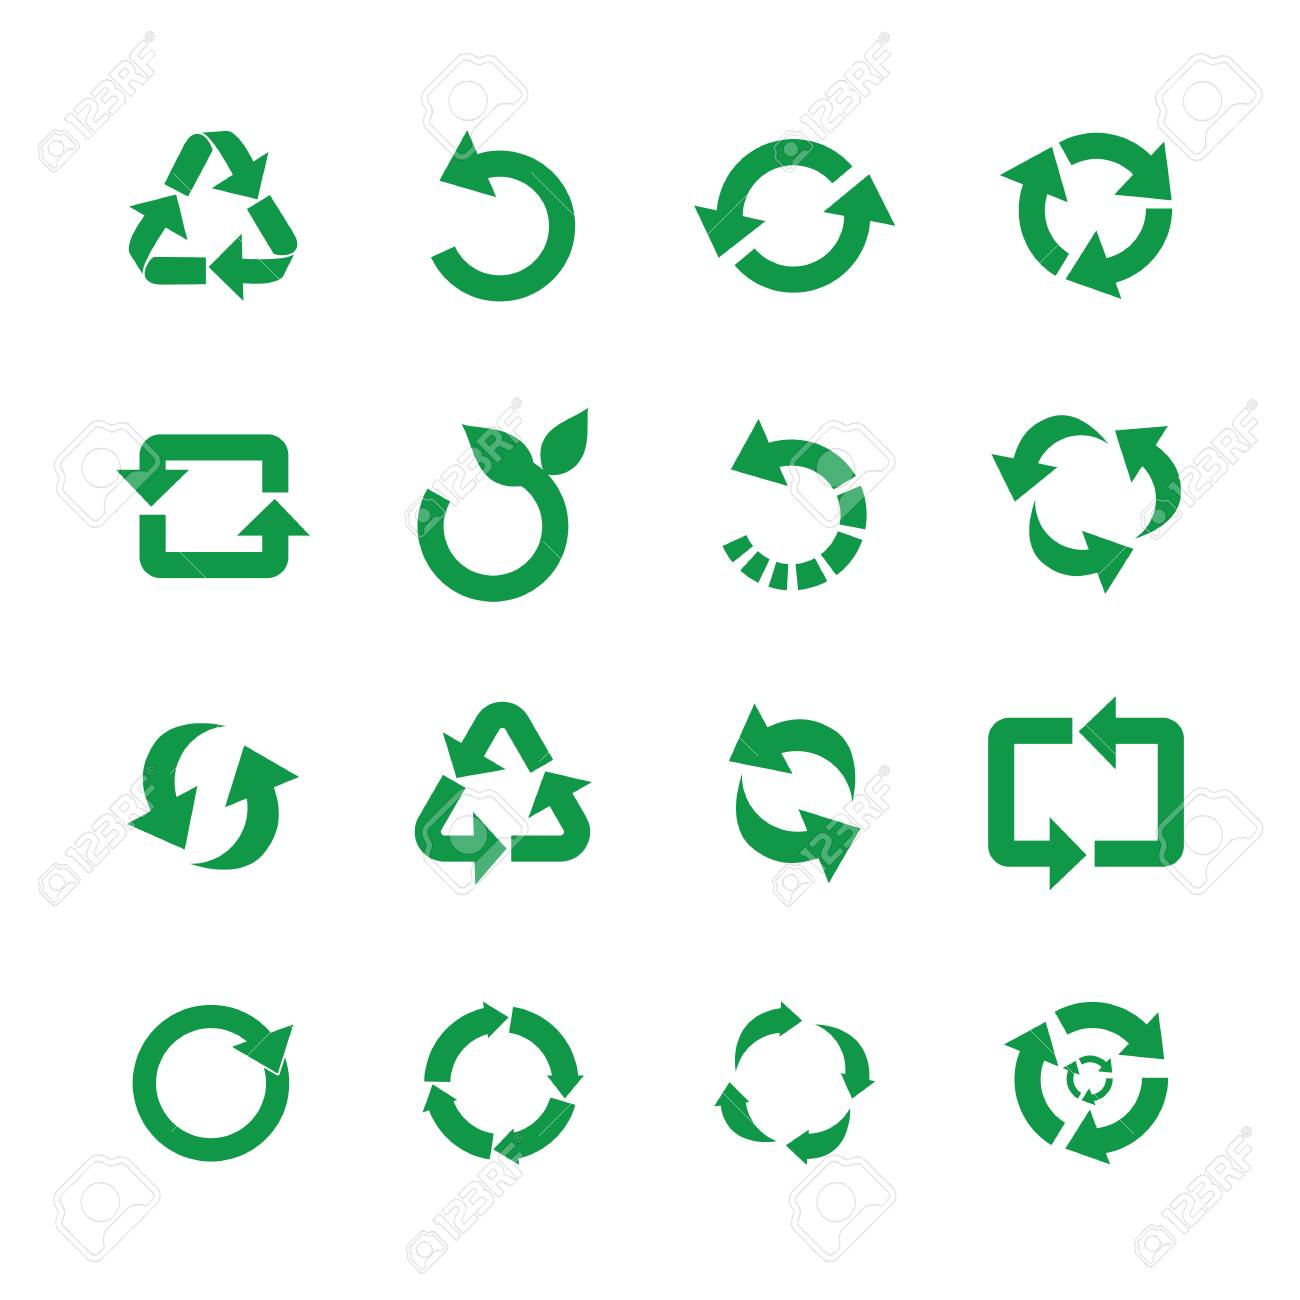 Zero waste and reuse symbols vector illustration set with various simple flat green signs of recycle with arrows in different forms for eco friendly materials and environmental protection concept. - 113886979